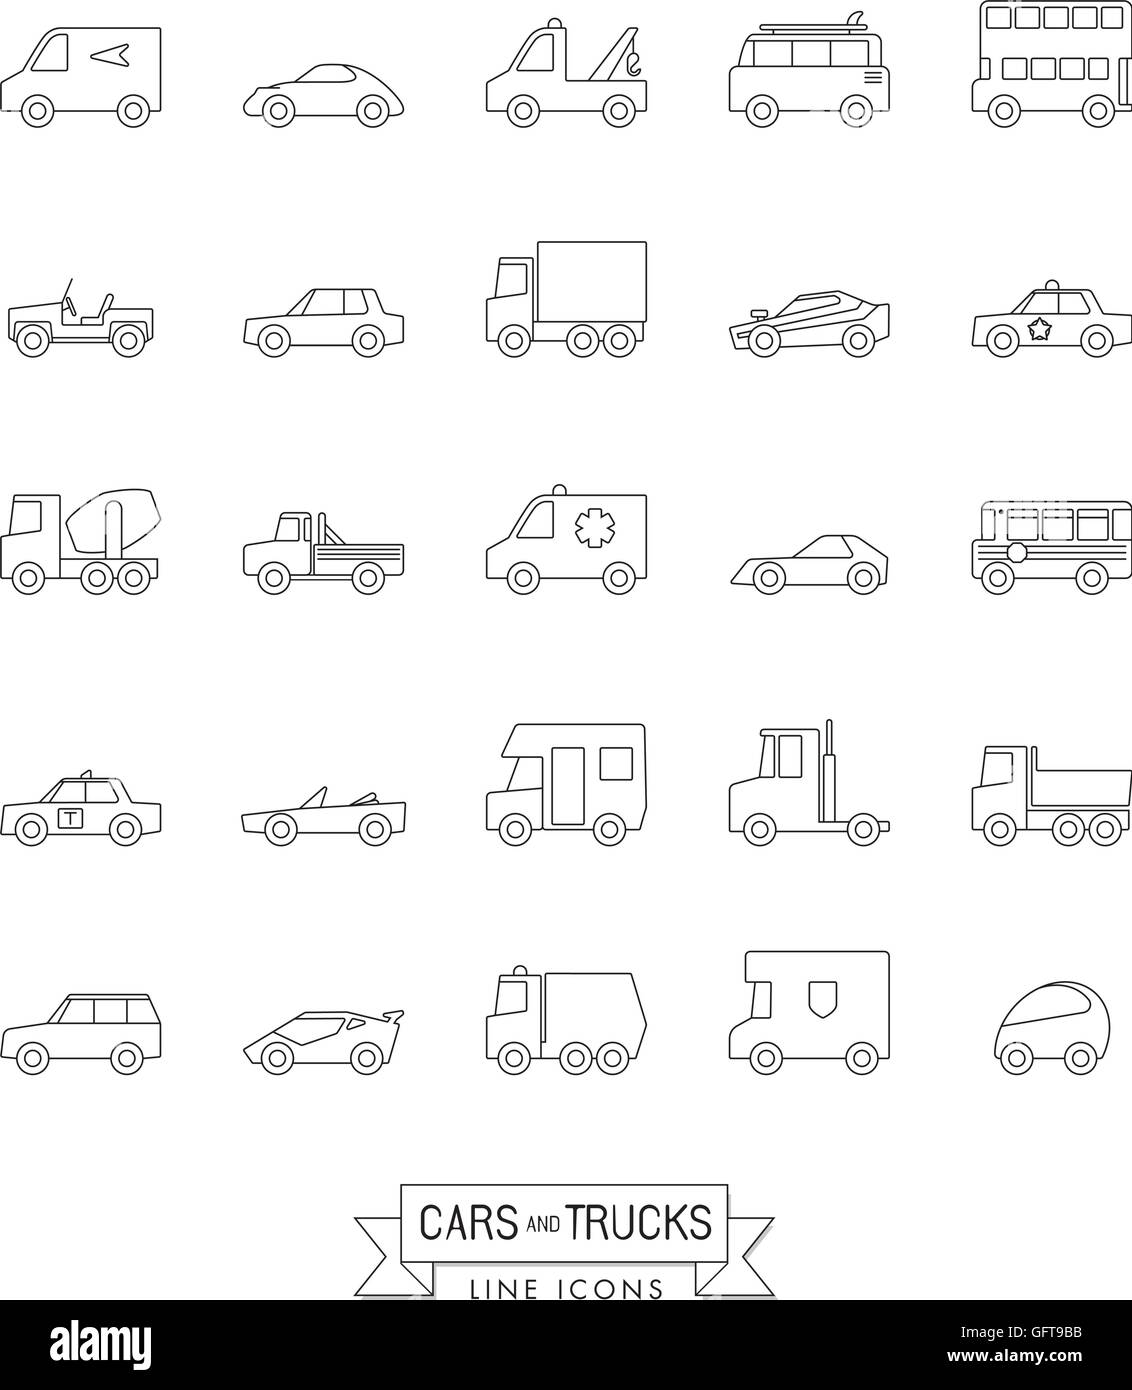 Cars, vans and other motor vehicles line icon set - Stock Image